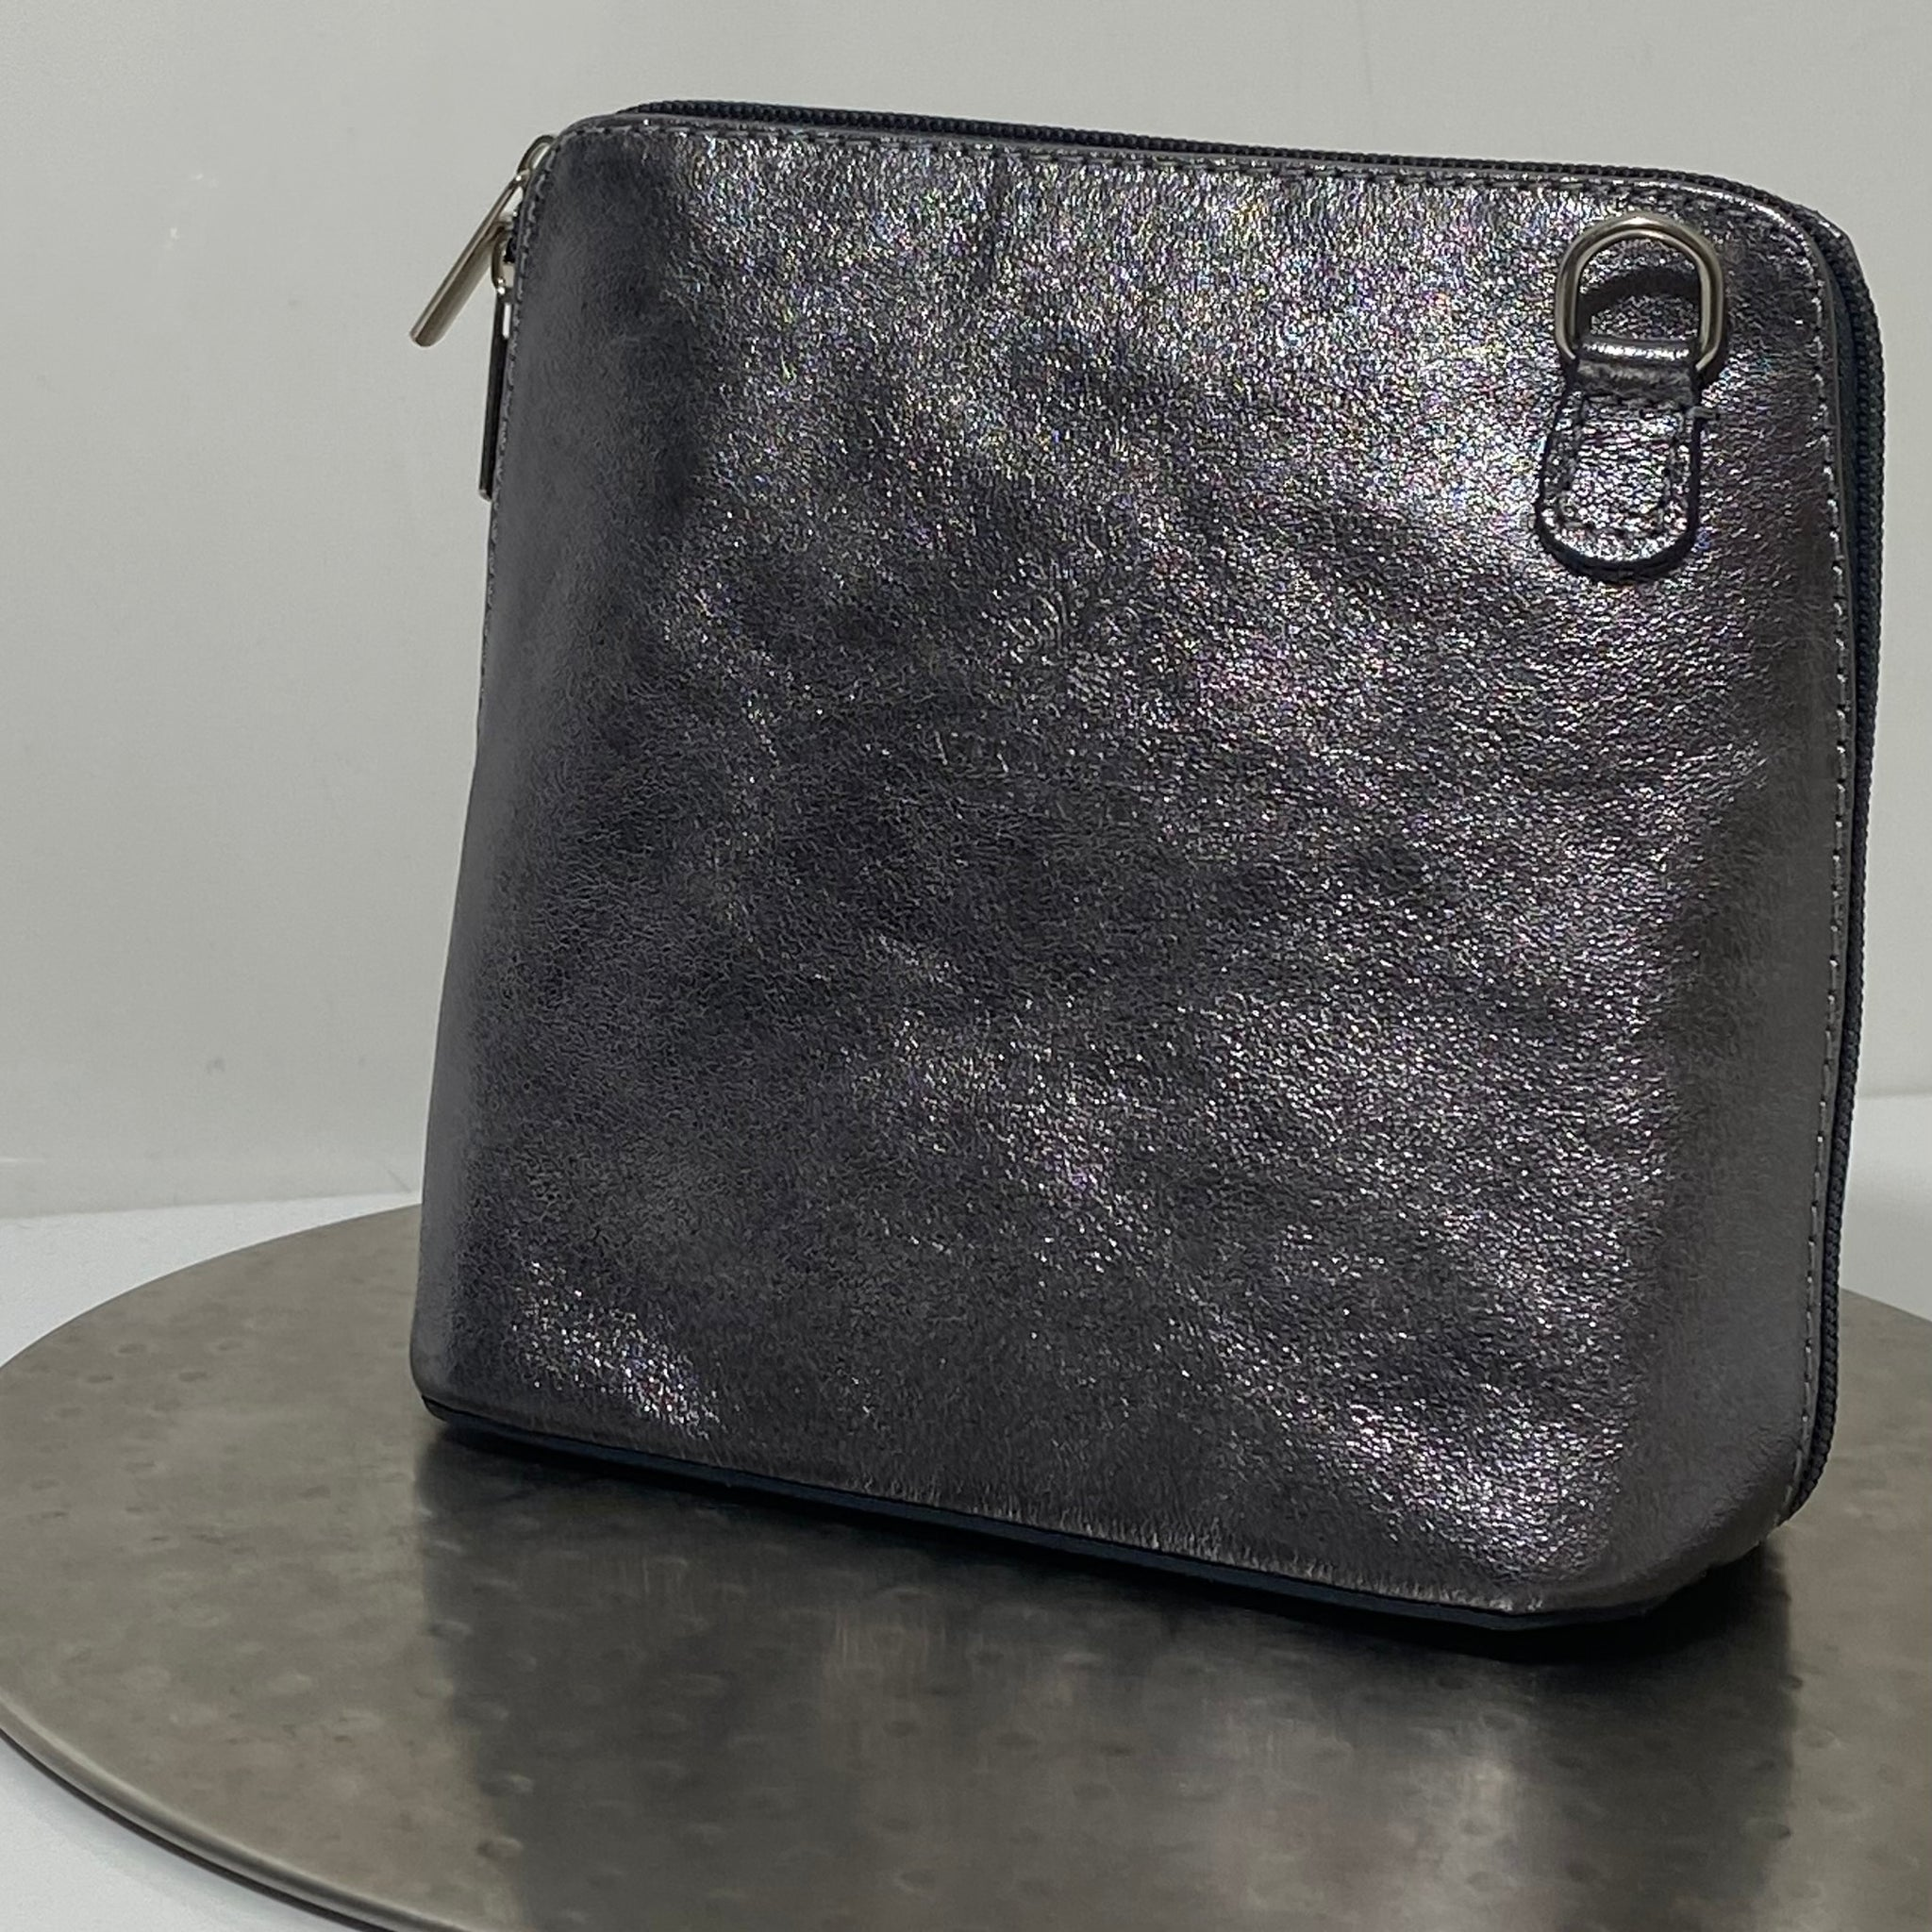 Pewter cross-body leather bag